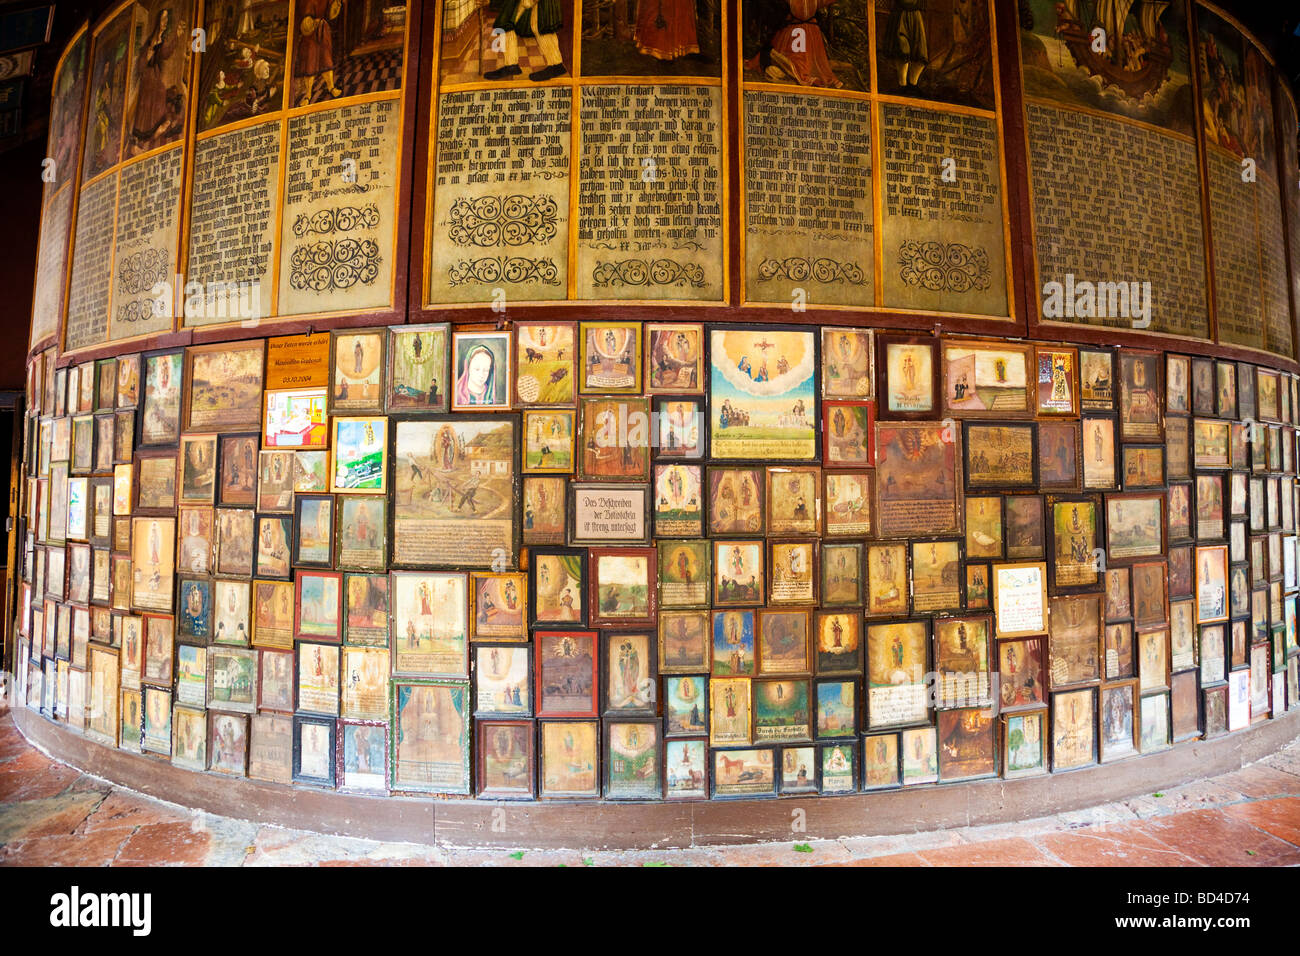 Votive art icons in the cloister on the shrine of the Chapel of the Miraculous Image in Altötting Bavaria Germany Stock Photo